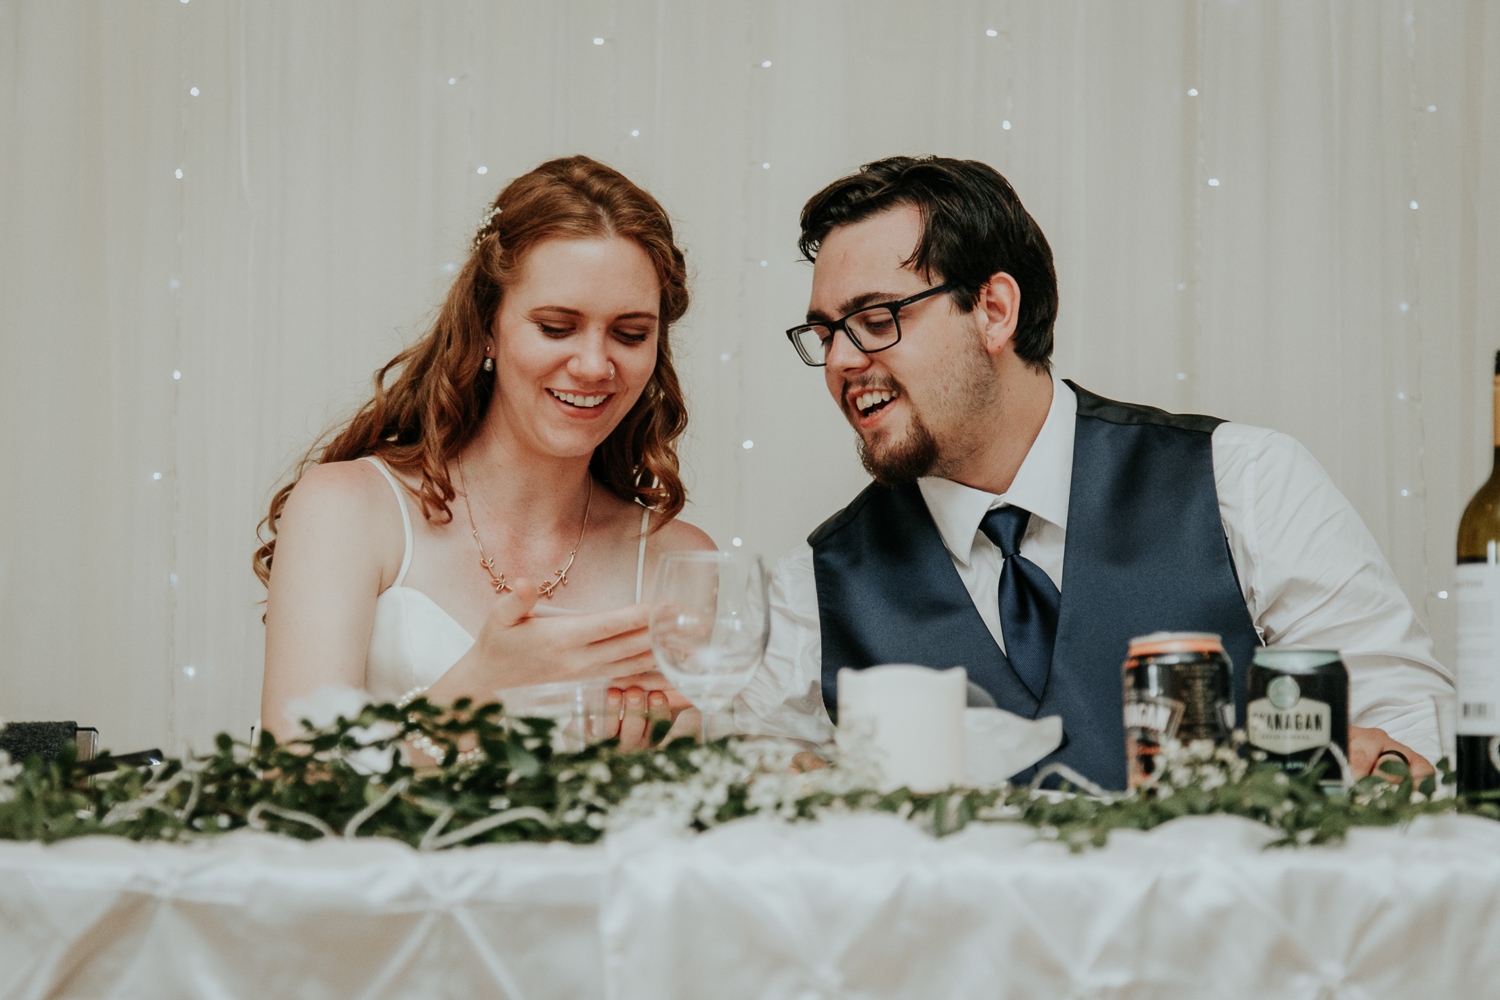 lethbridge-wedding-photographer-love-and-be-loved-photography-dan-tynnea-picture-image-photo-192.jpg